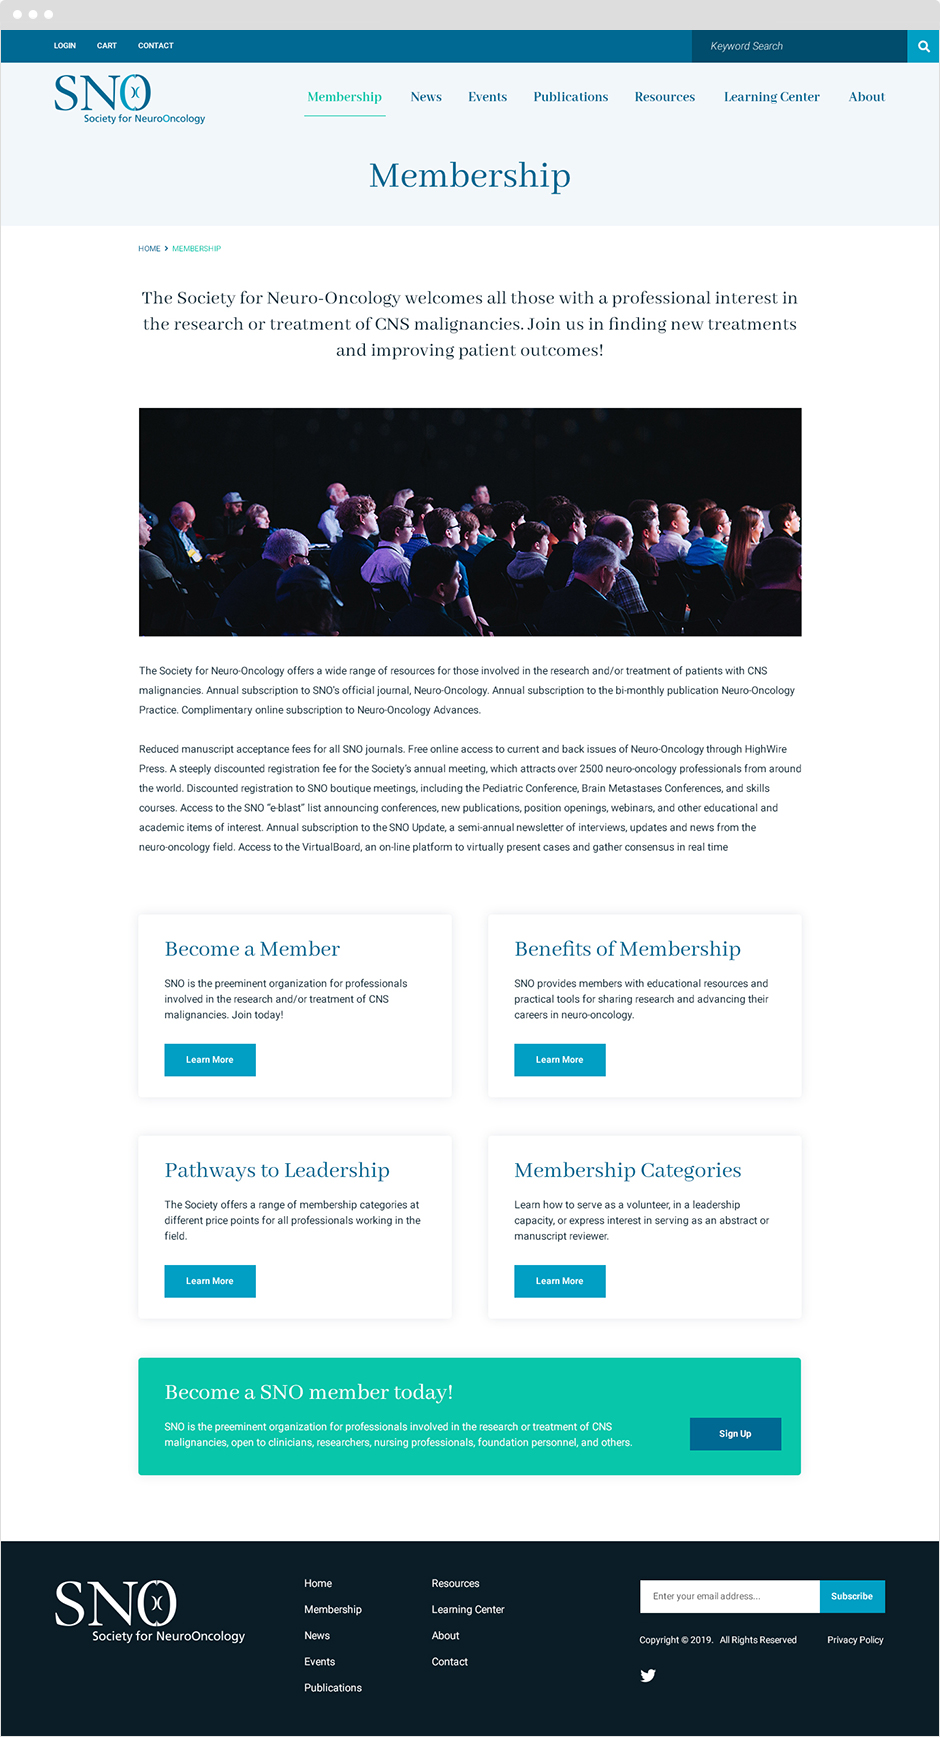 Landing Page Design for Society for Neuro-Oncology